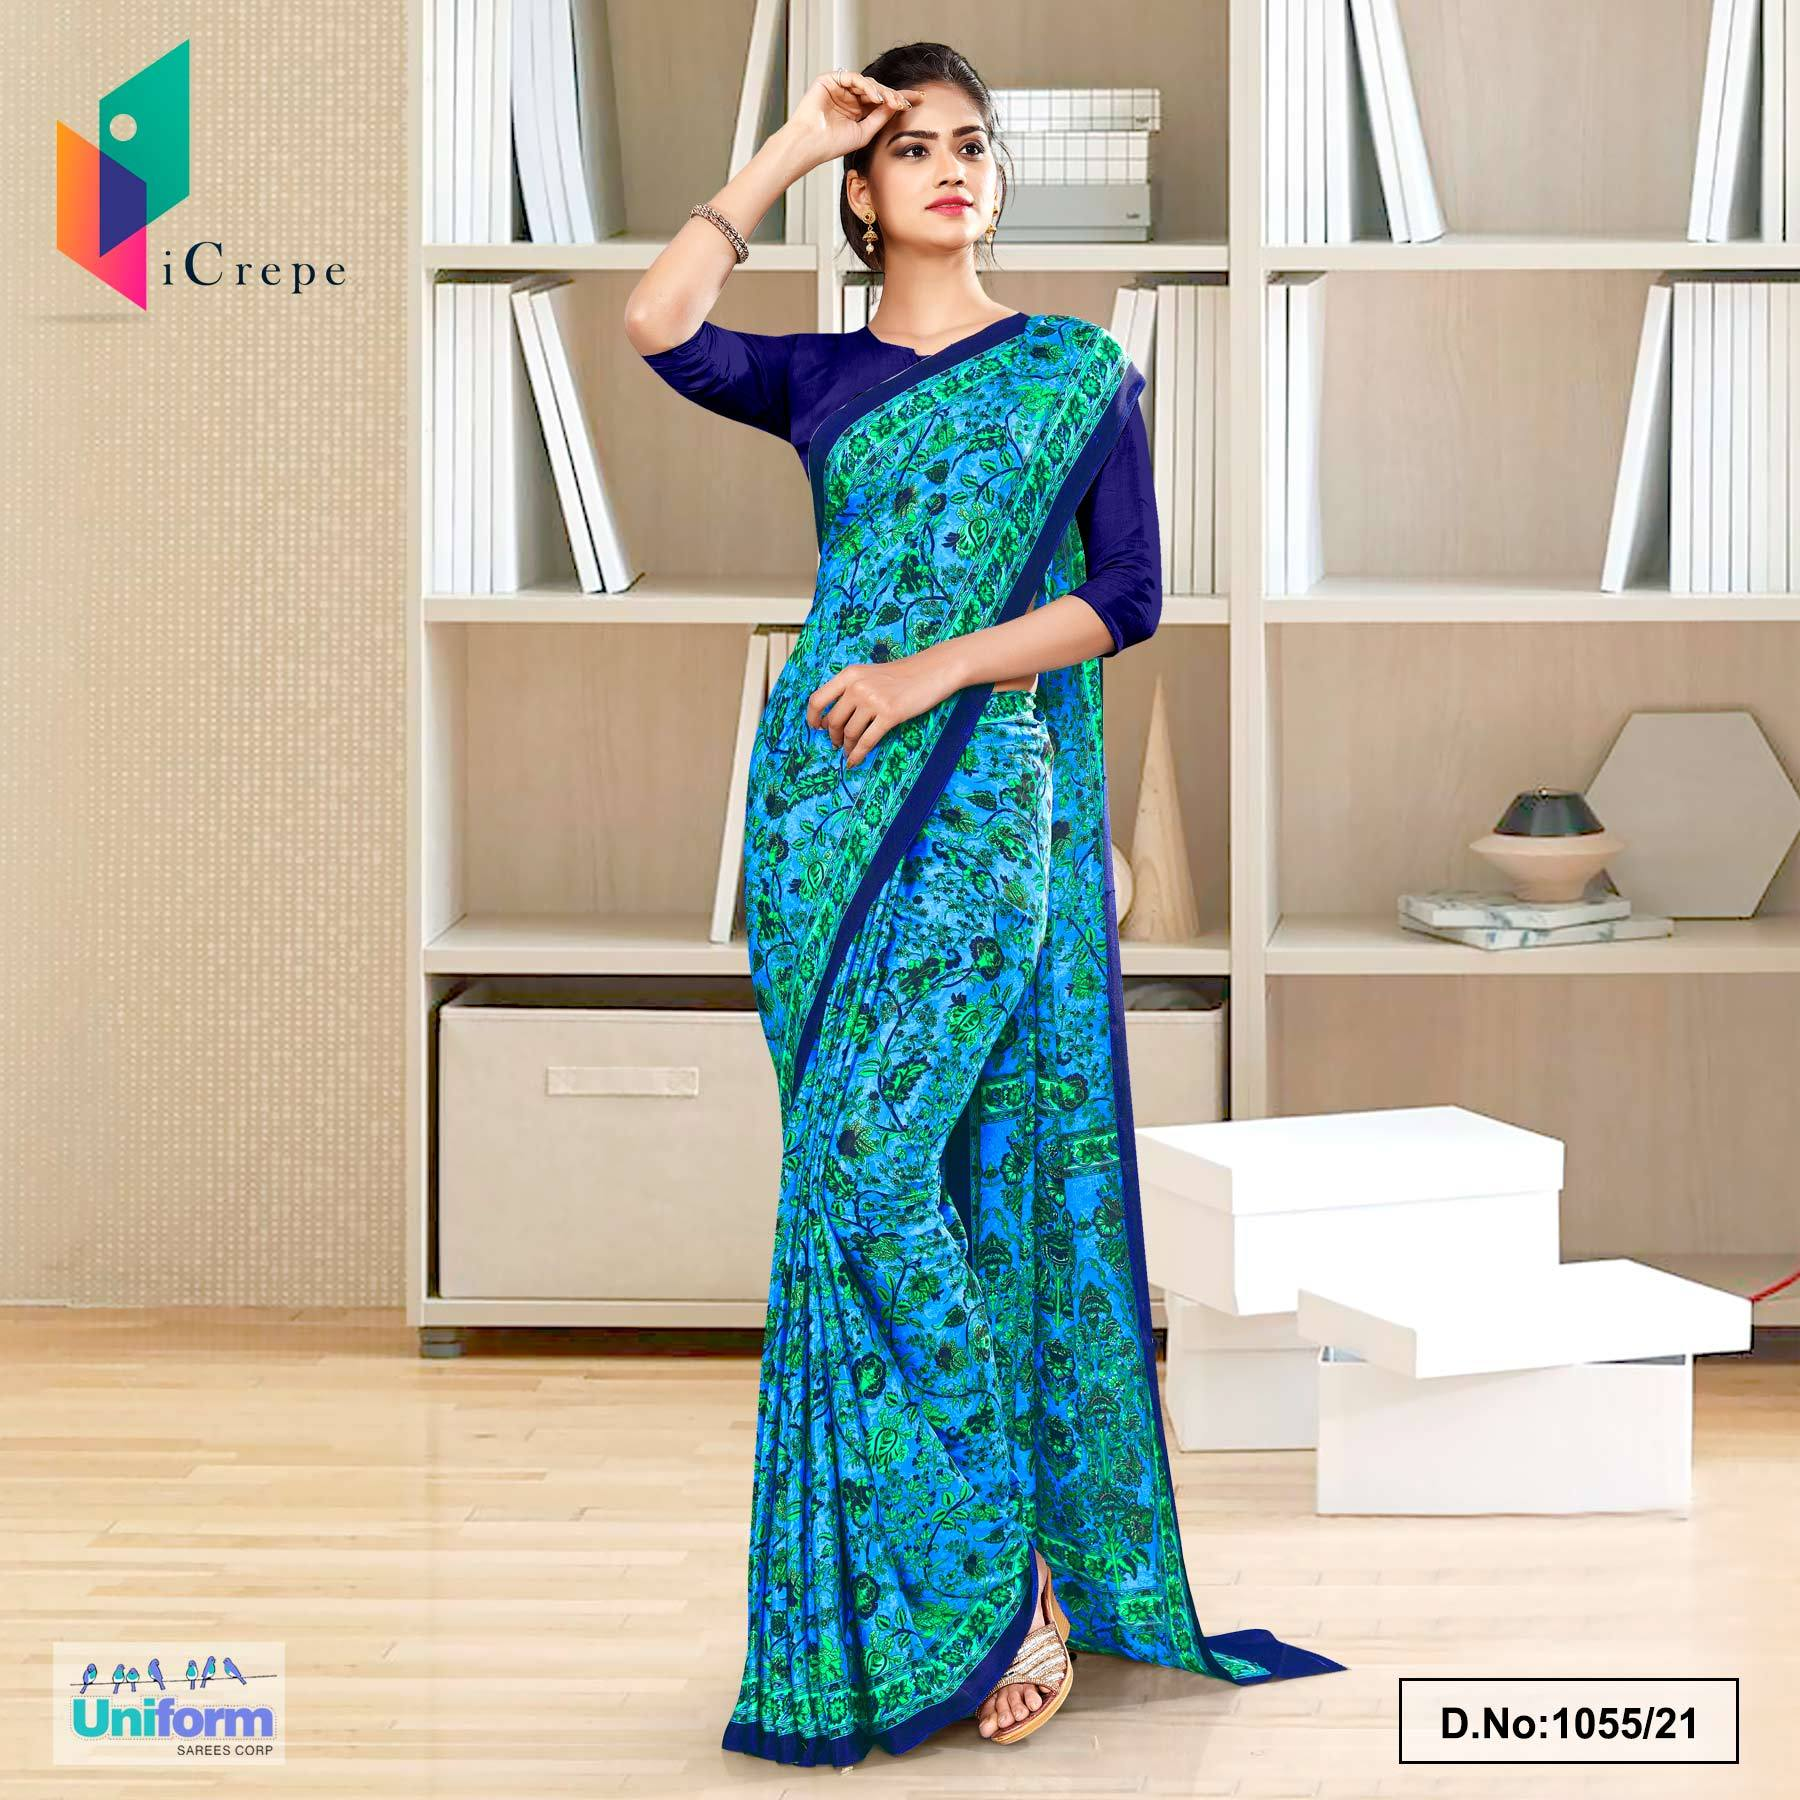 Sky Blue Navy Blue Flower Print Premium Italian Silk Crepe Uniform Sarees for Industrial Employees